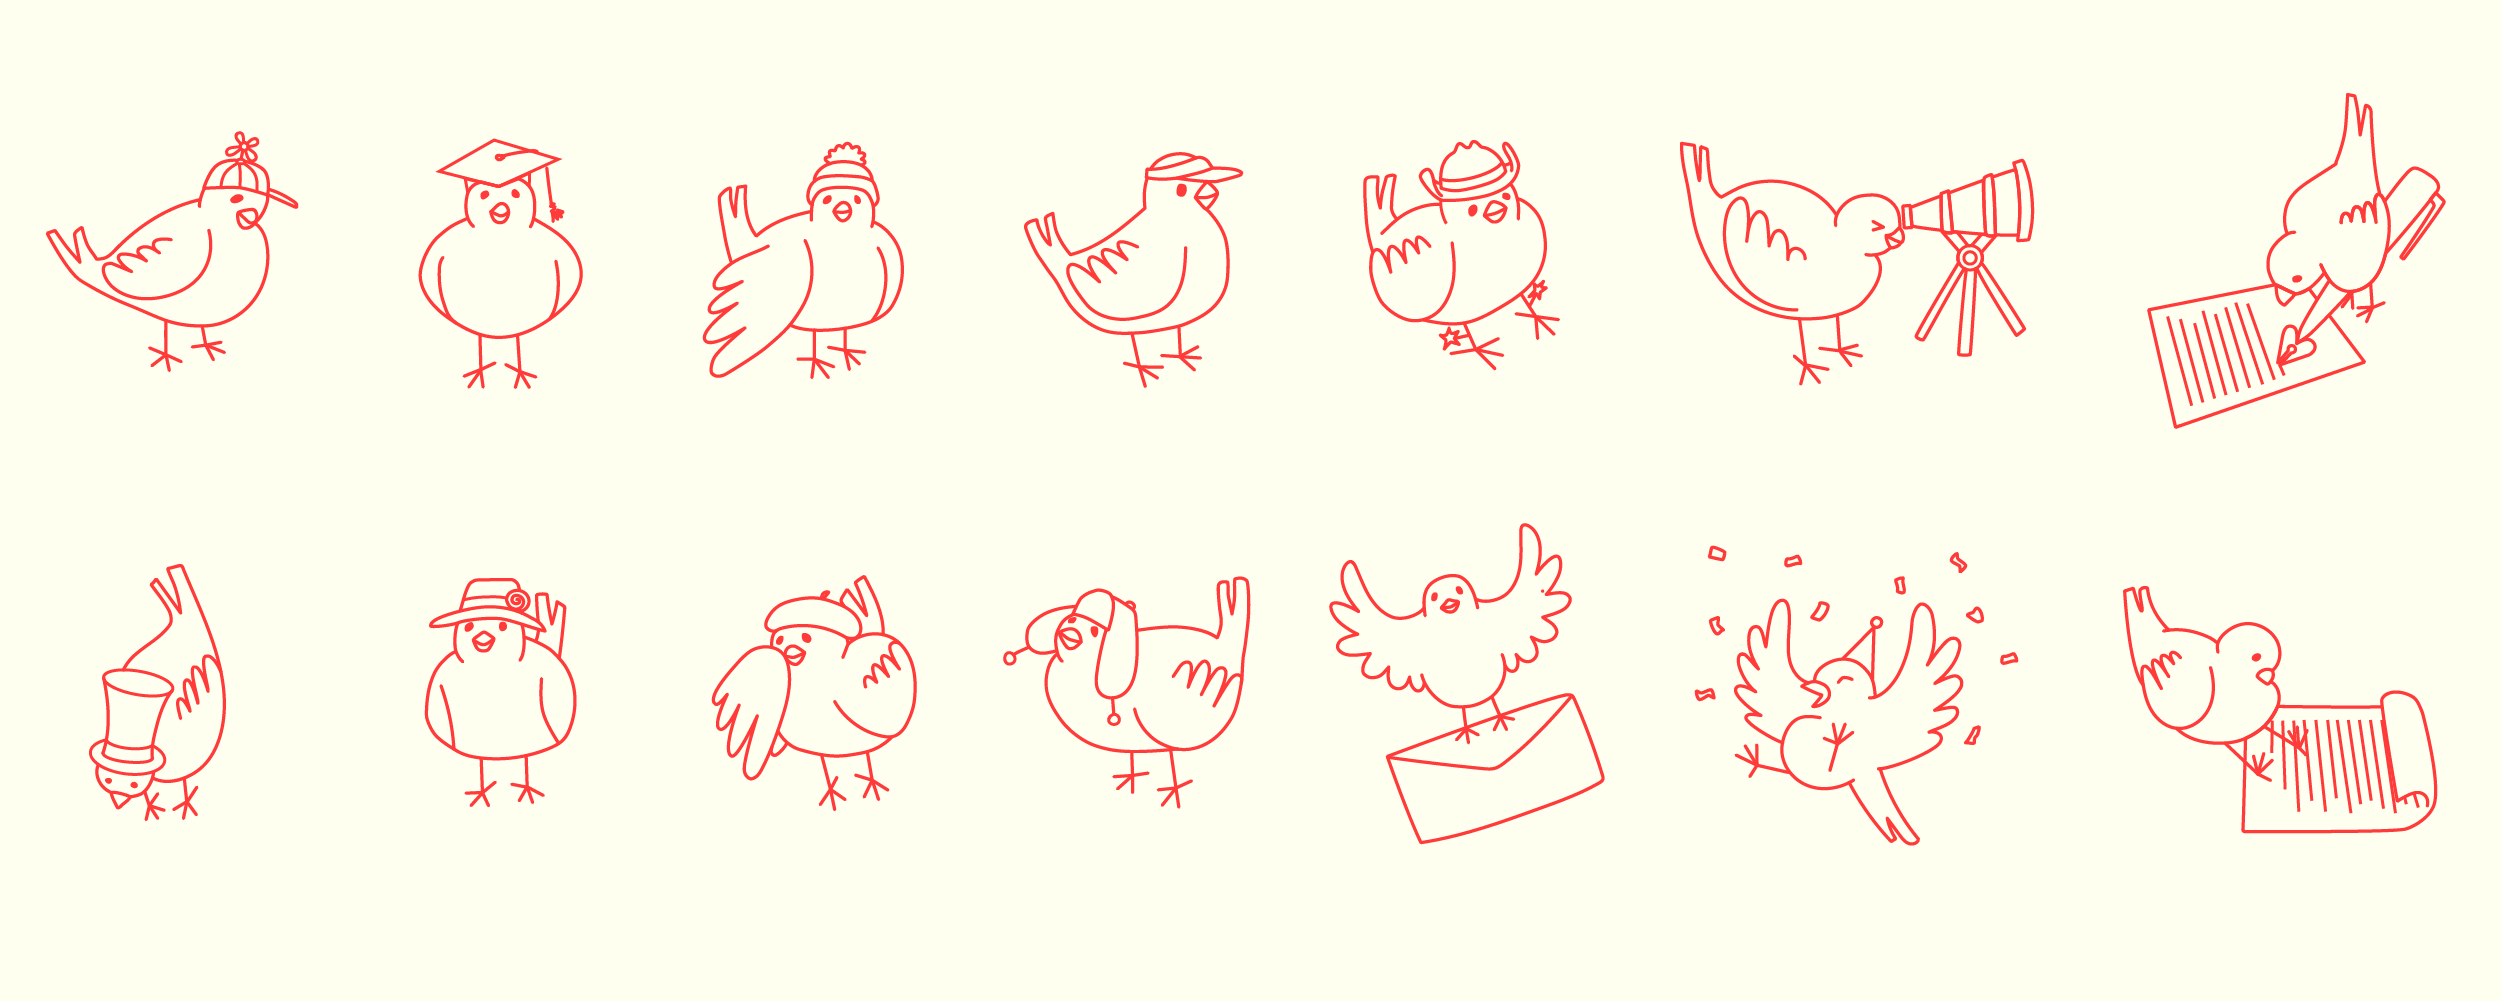 adorable orange lineart illustrations of canaries wearing hats and reading papers